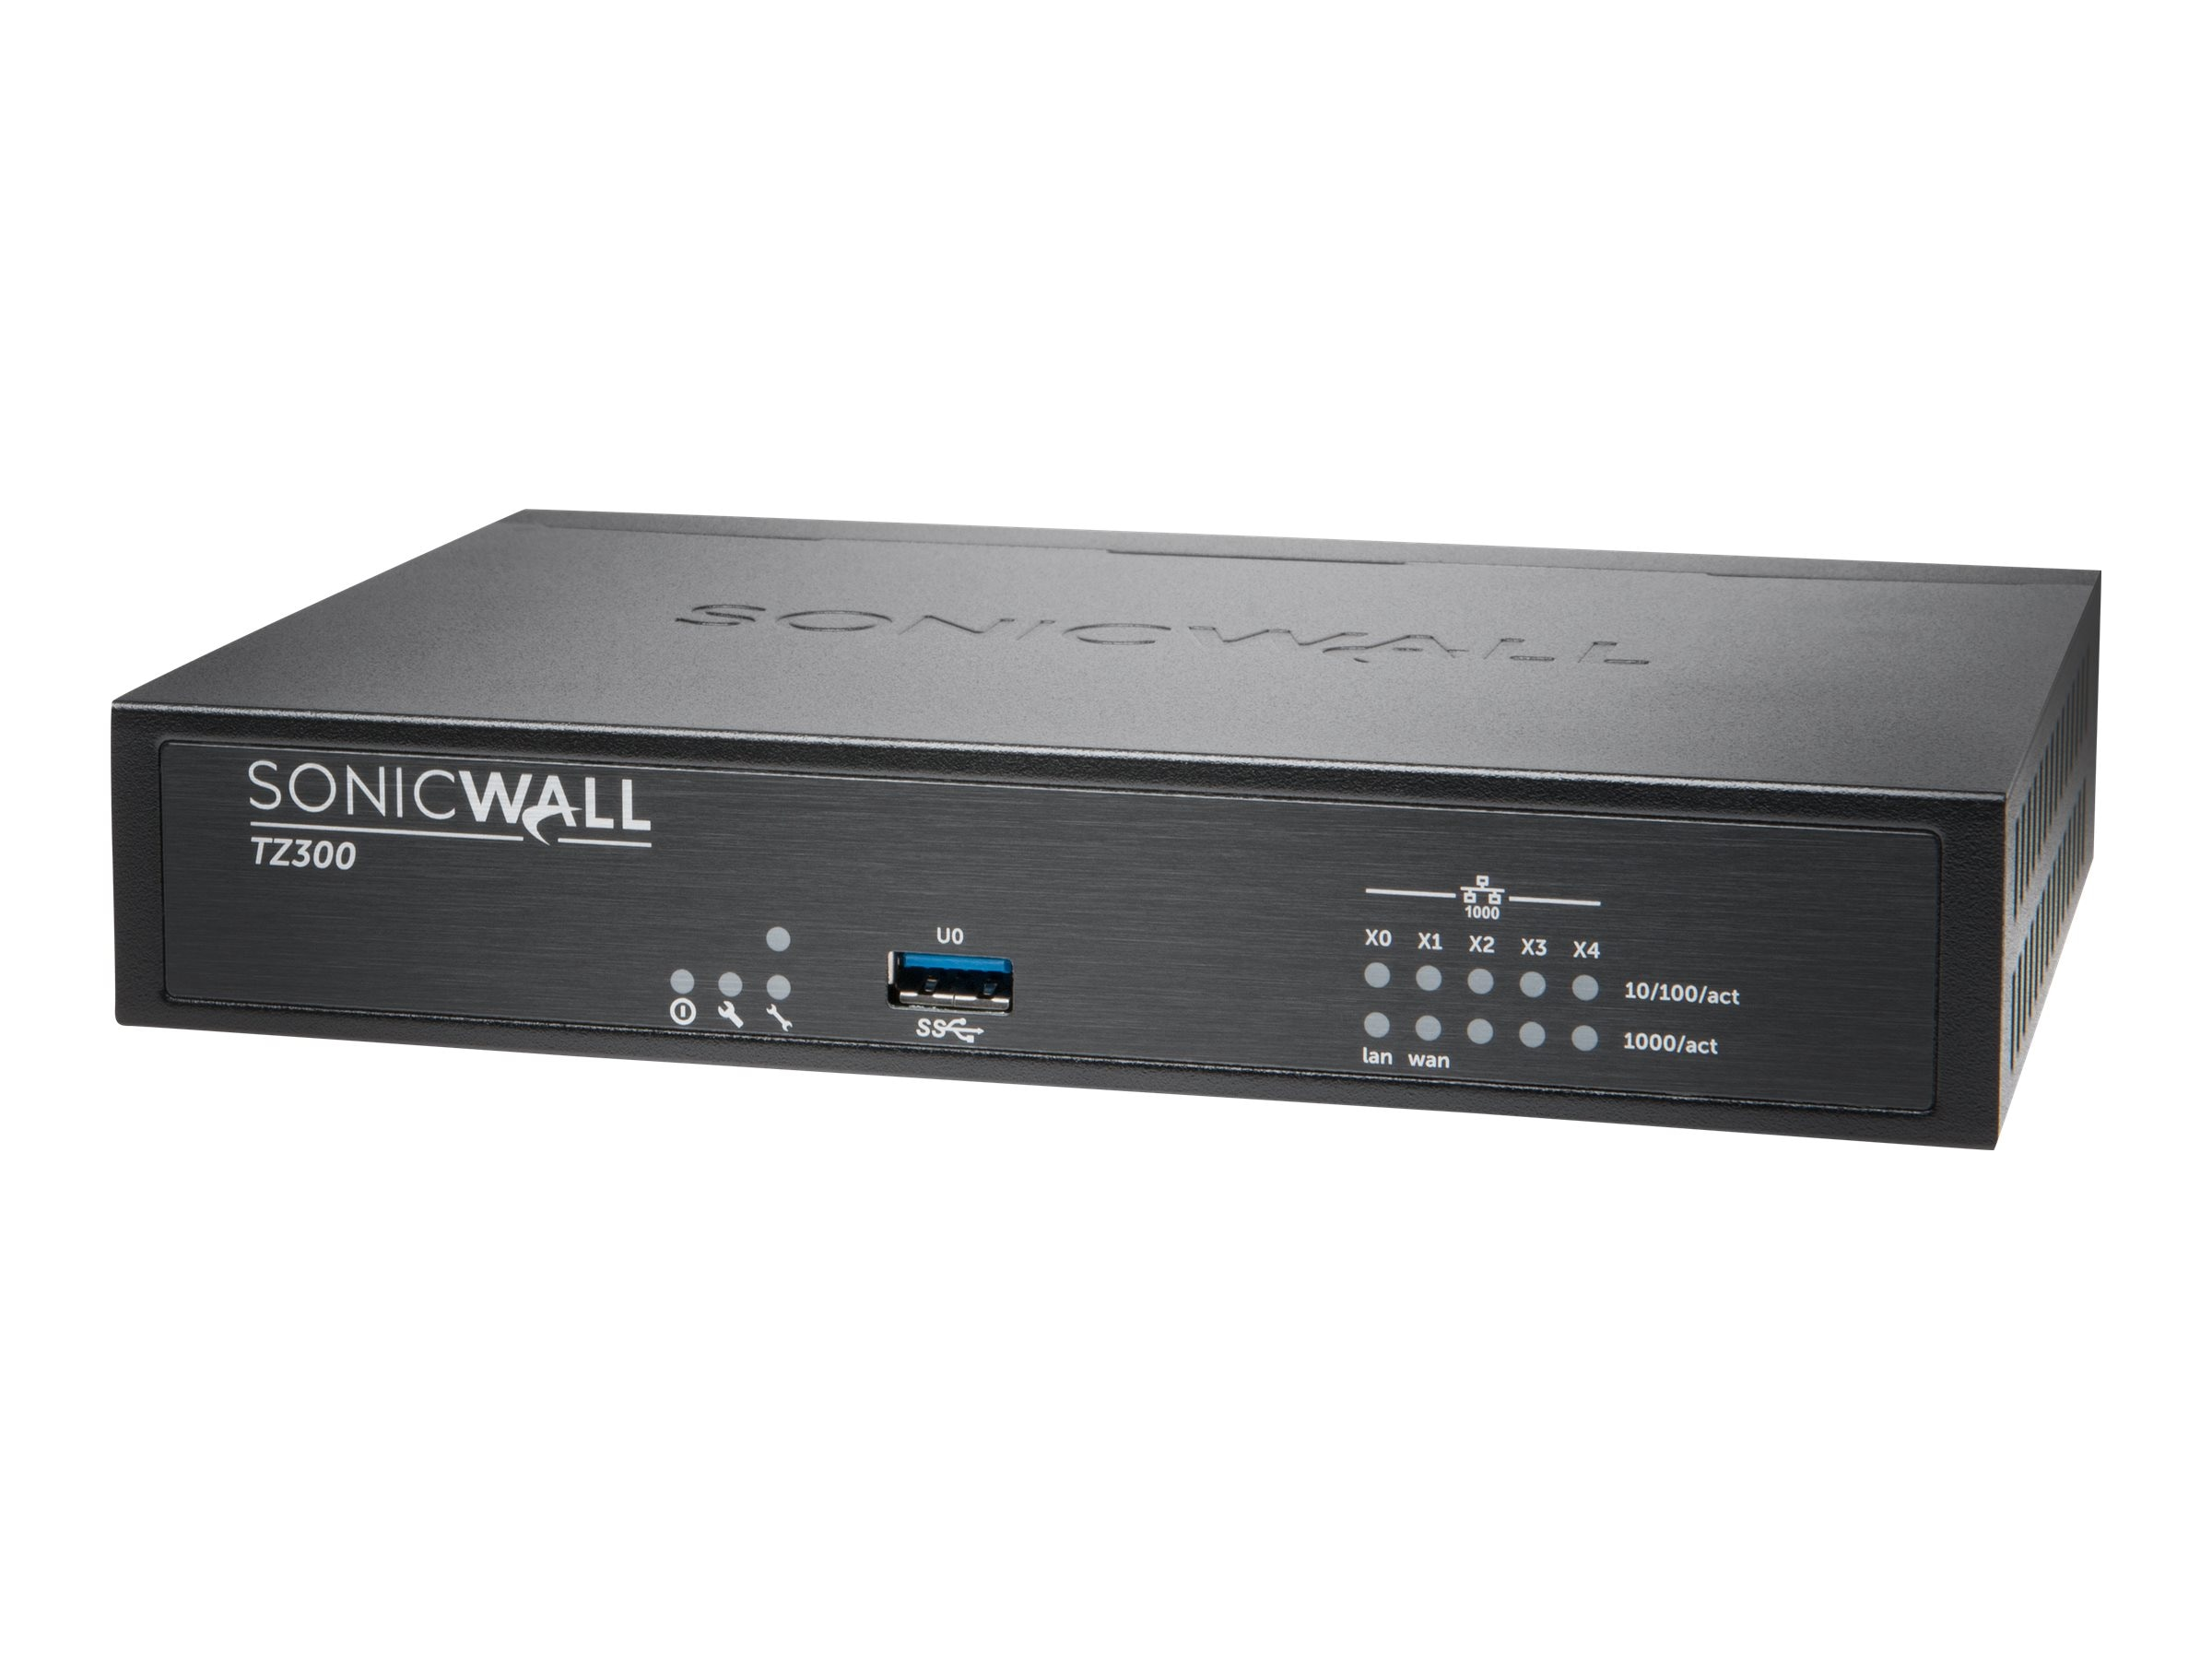 SonicWALL 01-SSC-0581 Image 1